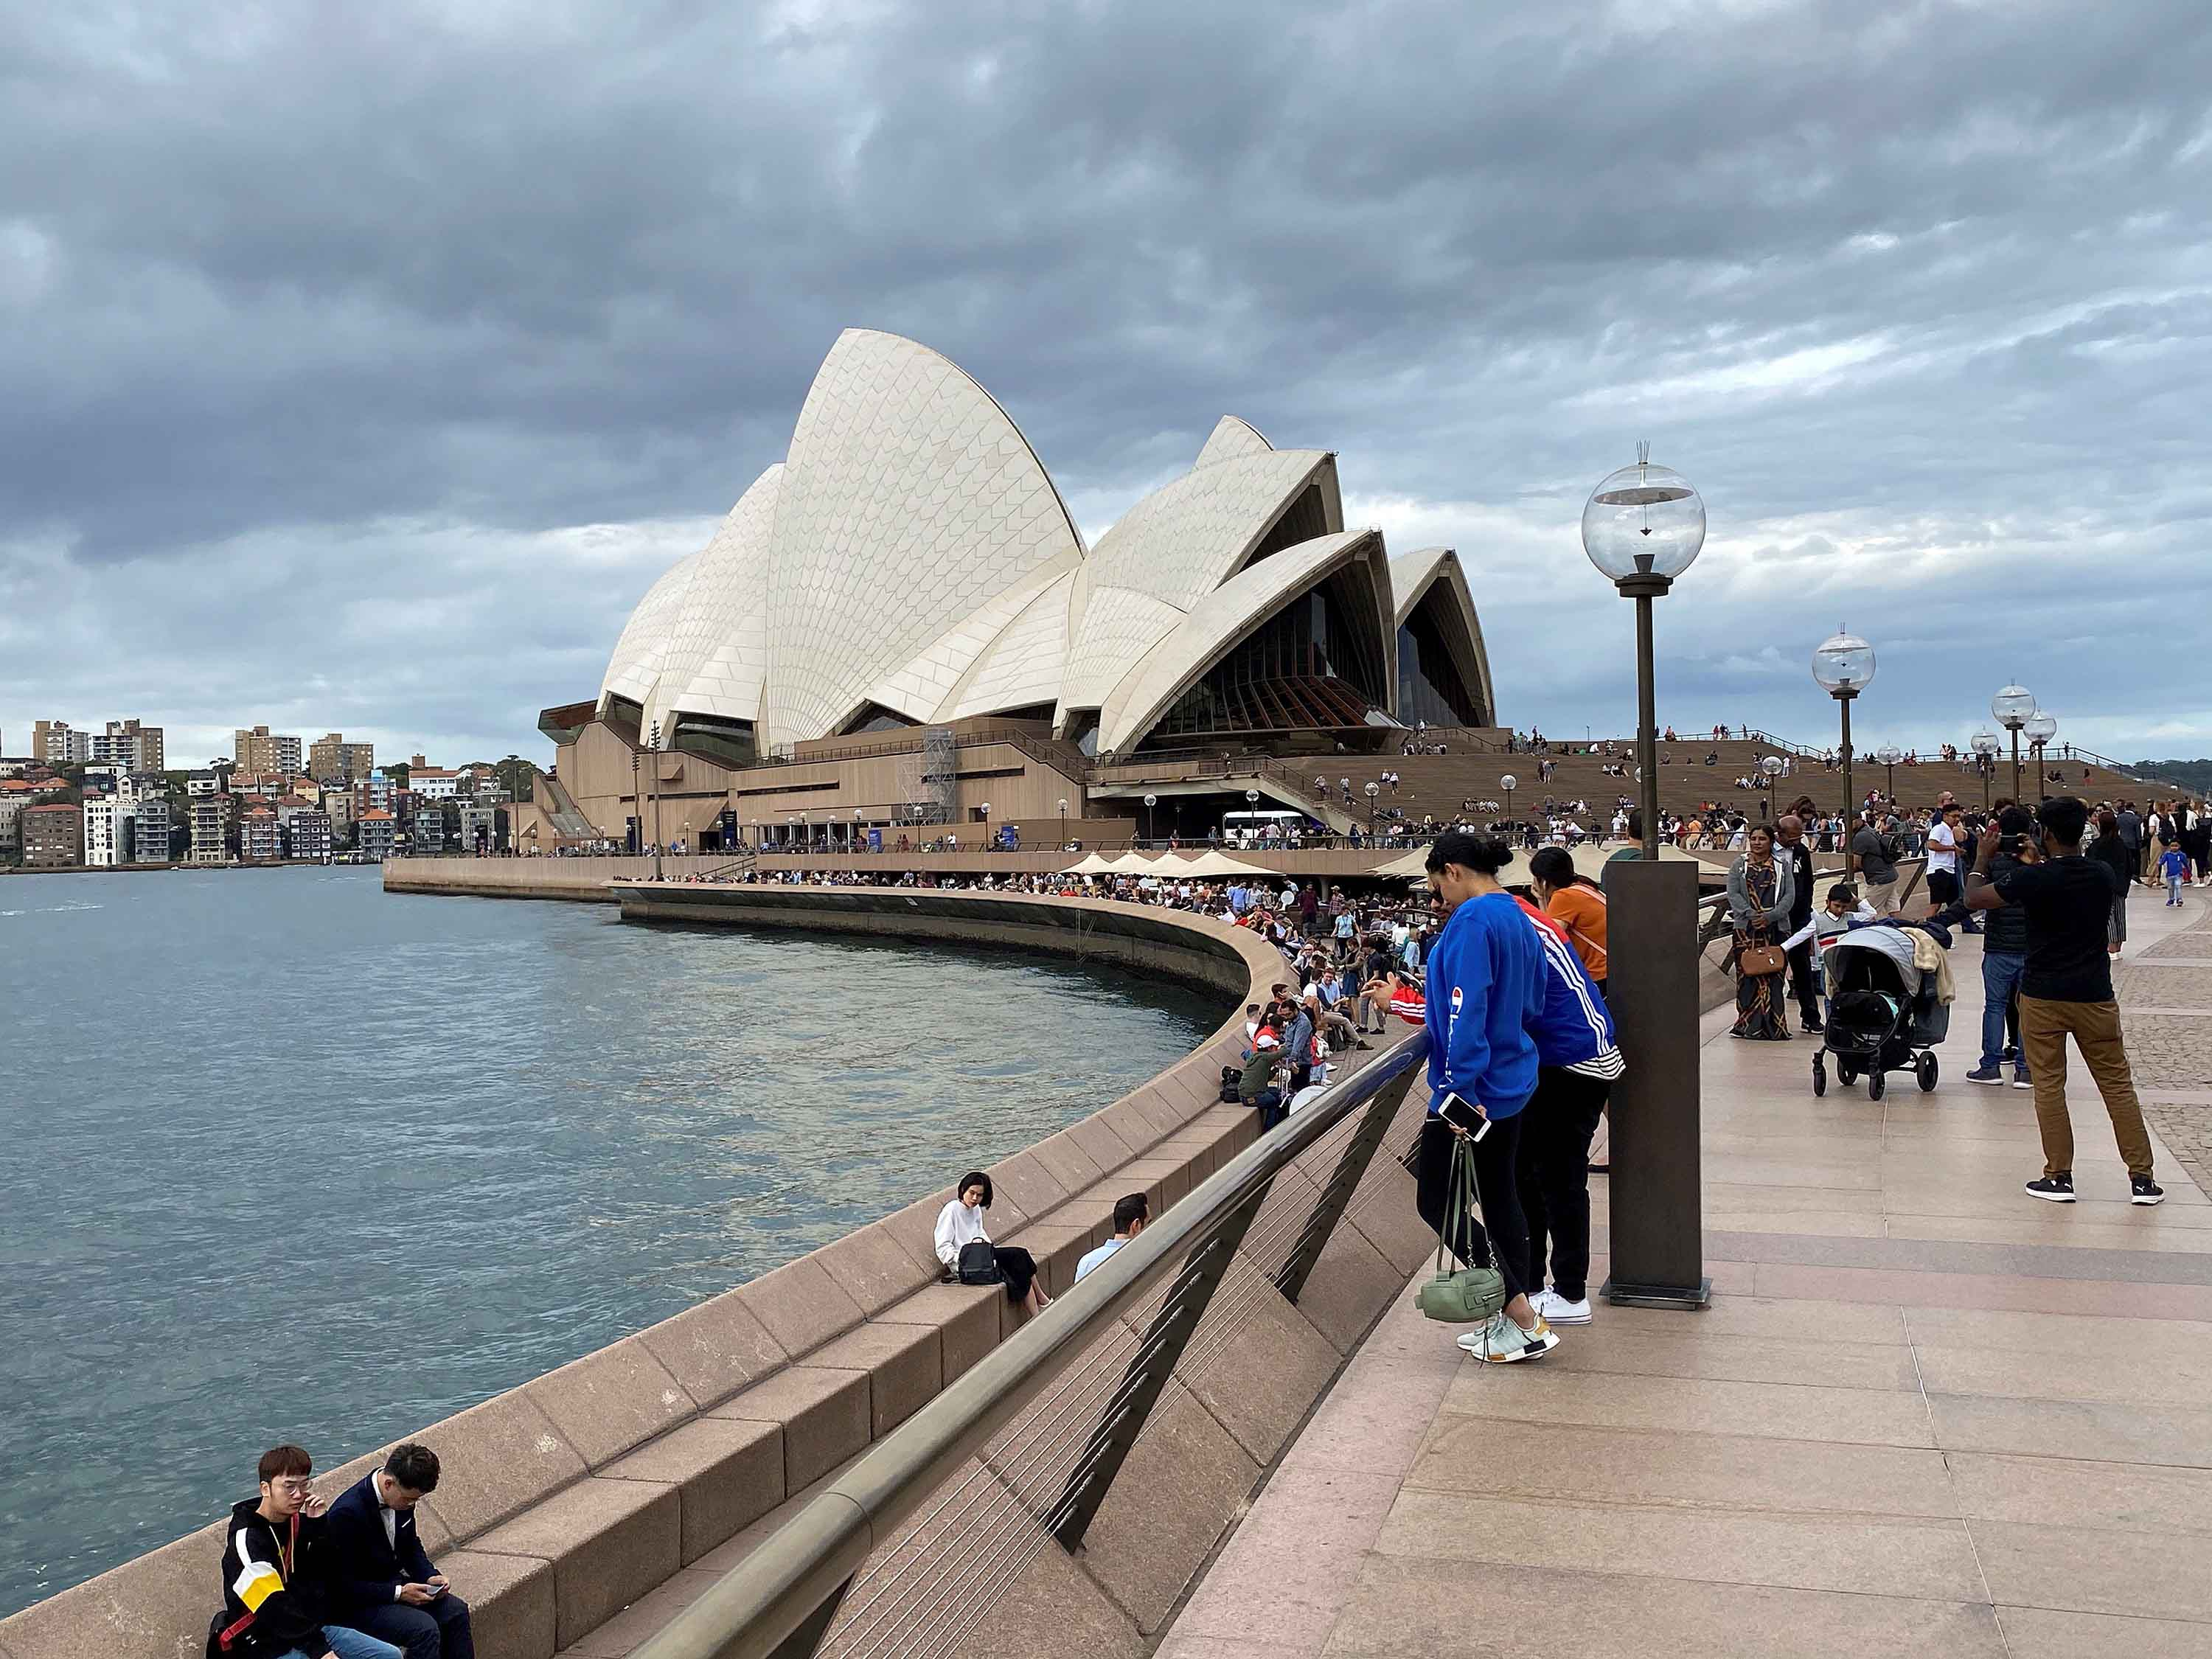 The Sydney Opera House is pictured on March 8, in Sydney, Australia.